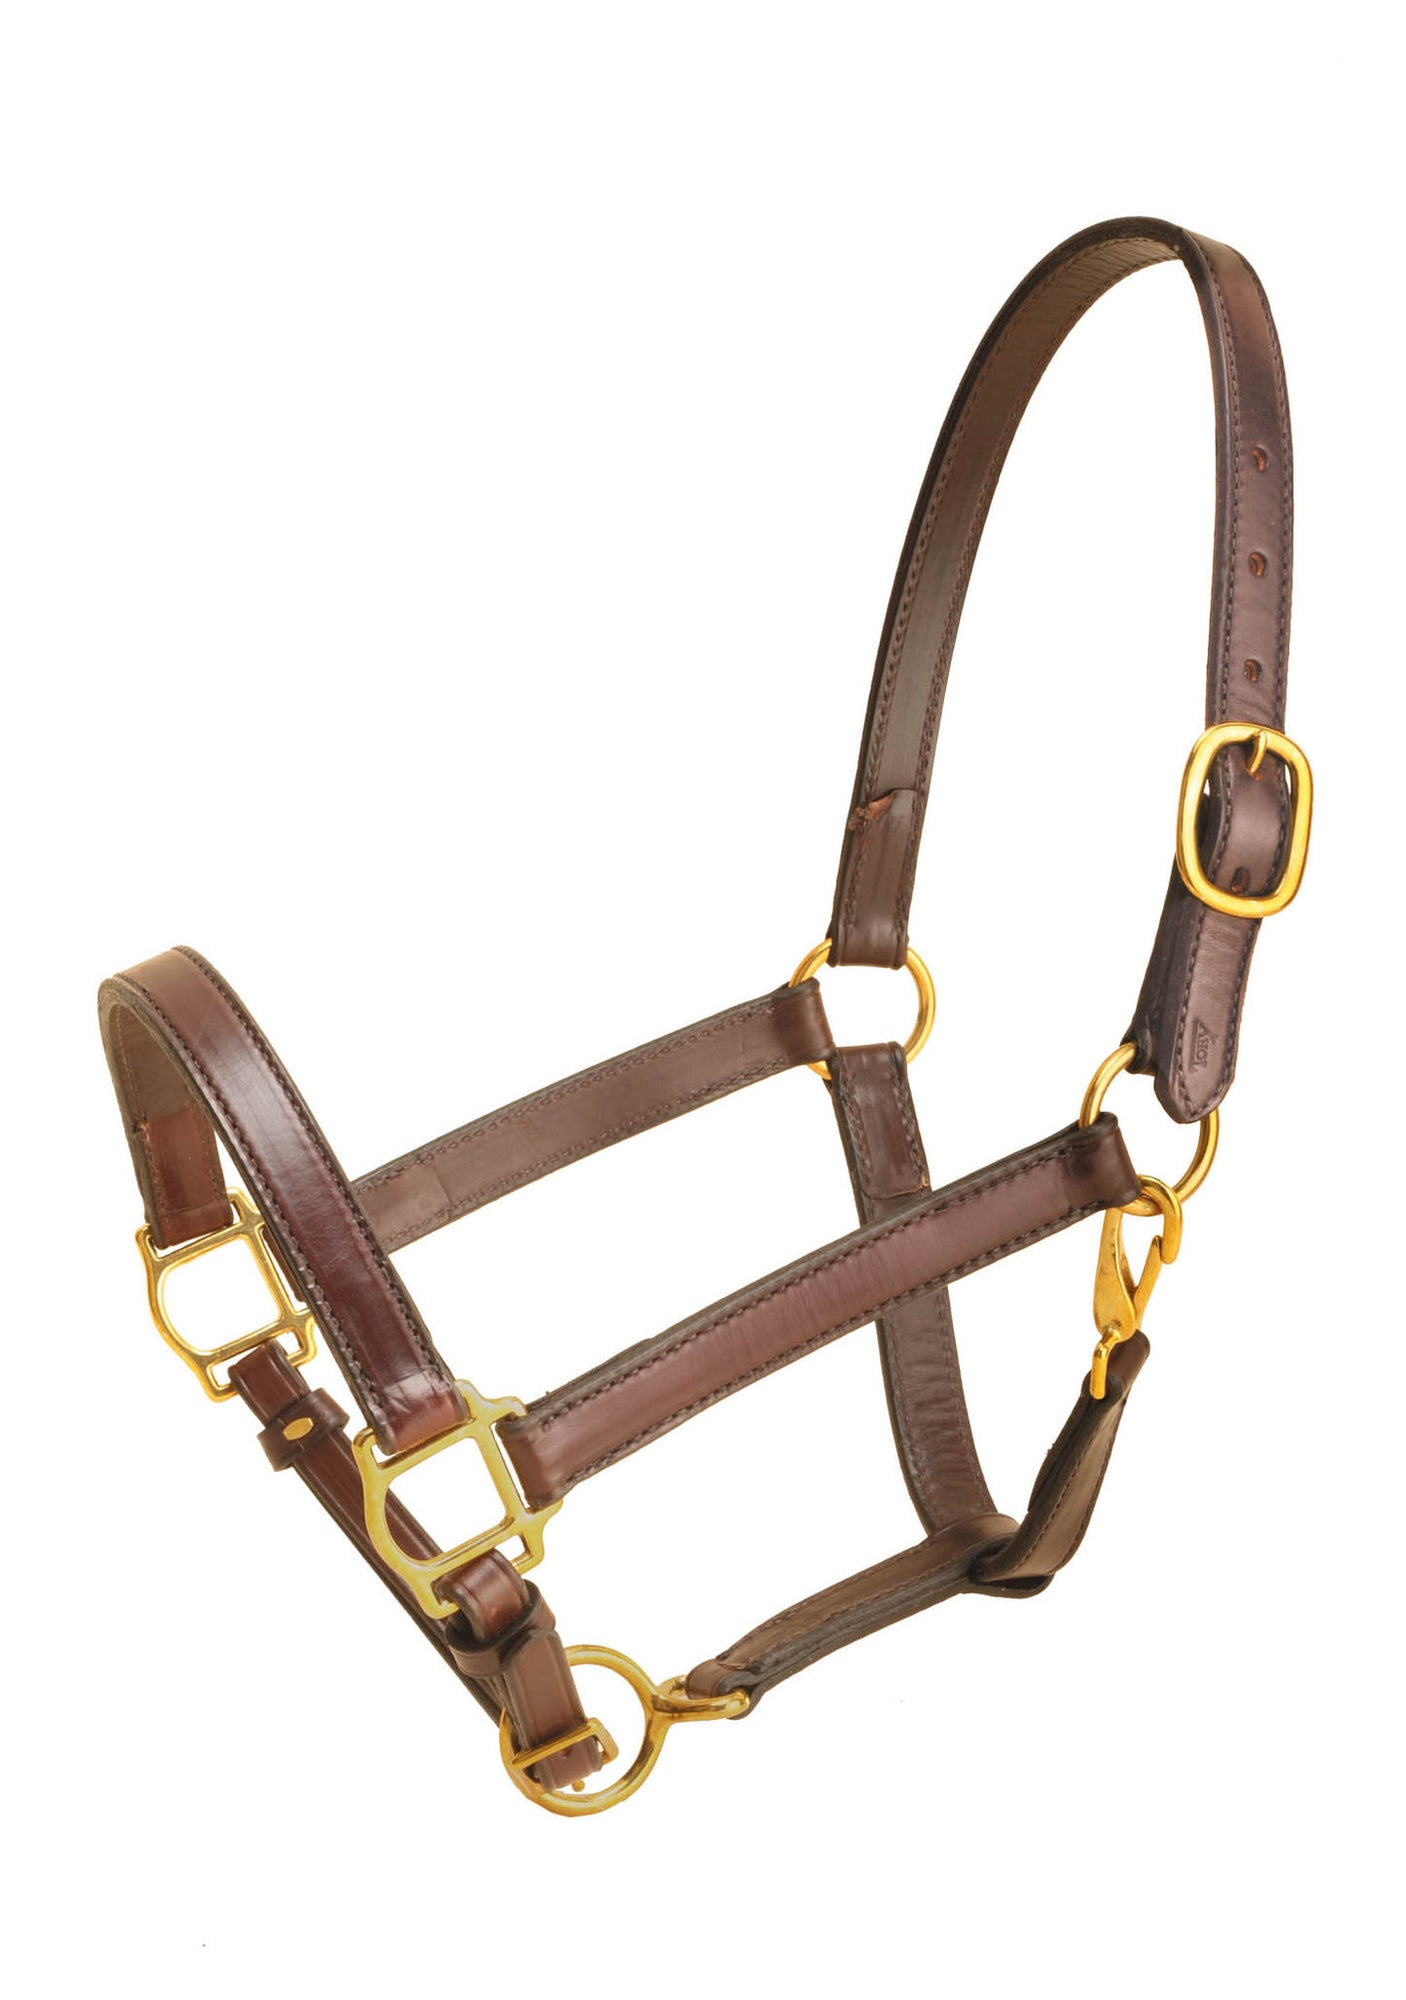 "Tory Leather 1"" Cob Halter With Single Crown Buckle, Snap Throat"